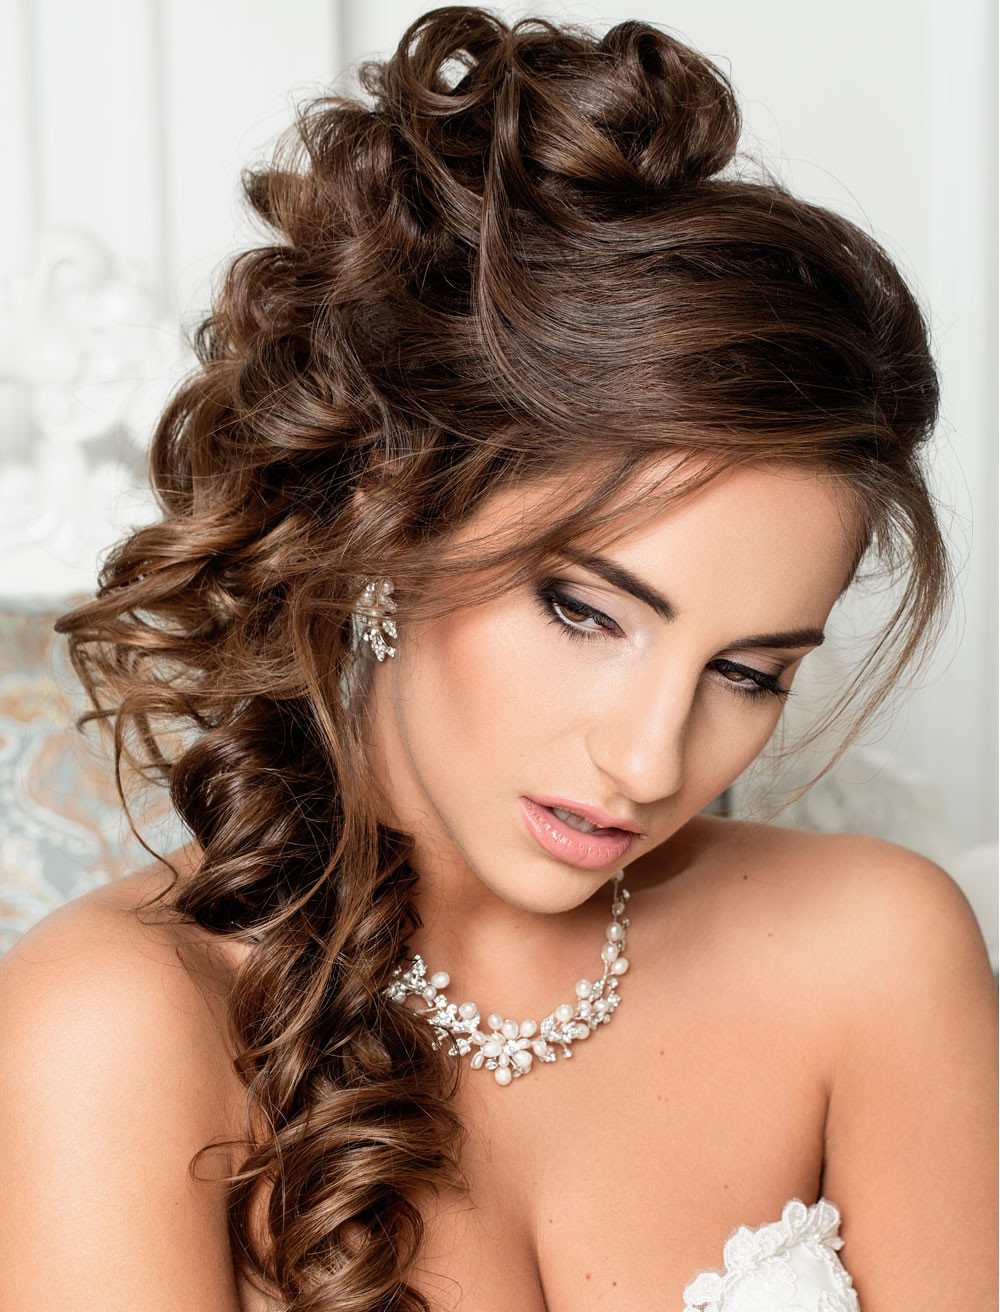 Long Hairstyles For Weddings  Very Stylish Wedding Hairstyles for Long Hair 2018 2019